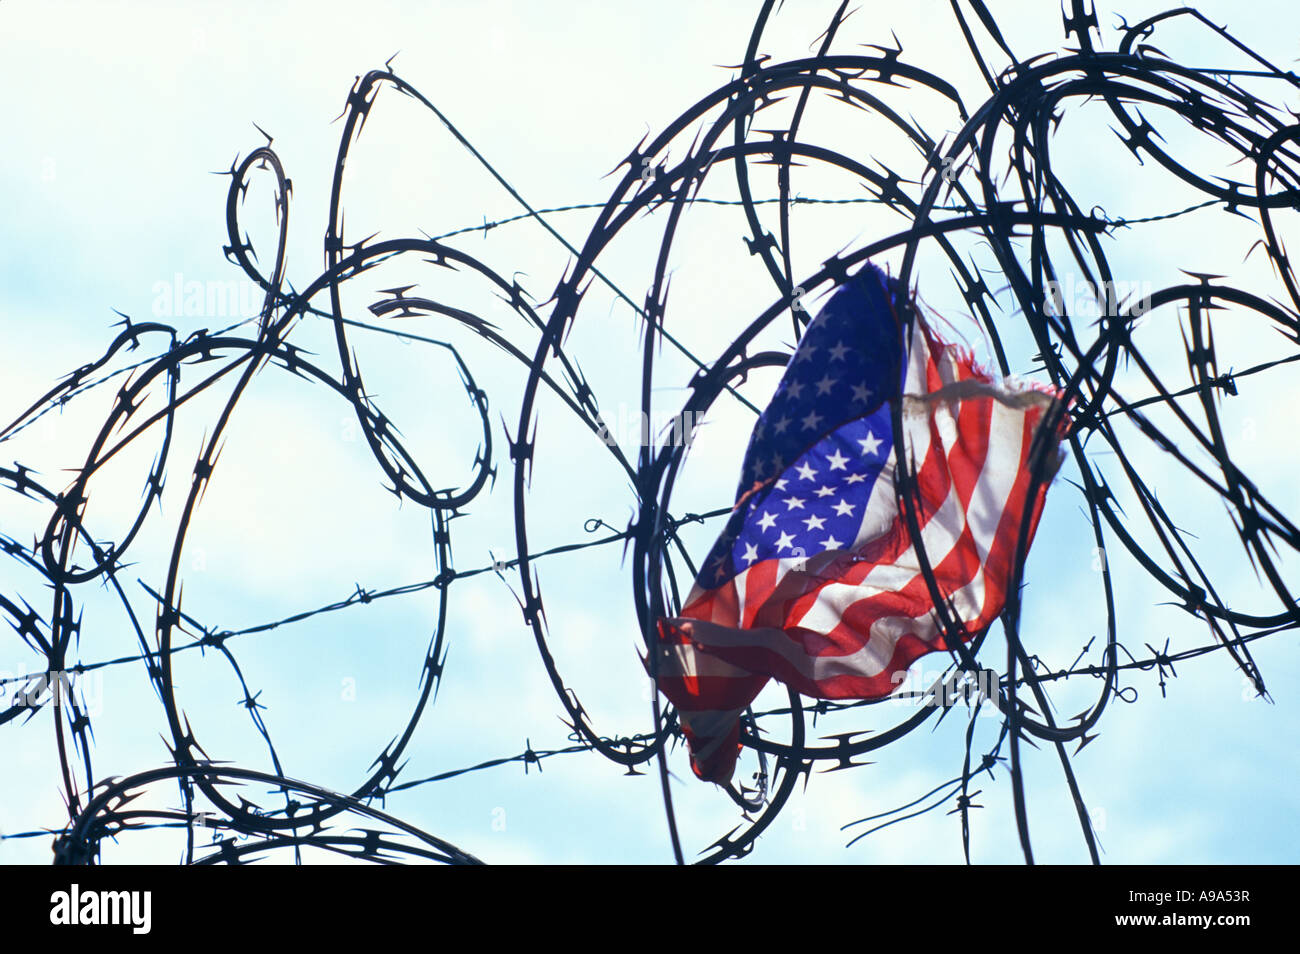 Caught In Barbed Wire Stock Photos & Caught In Barbed Wire Stock ...